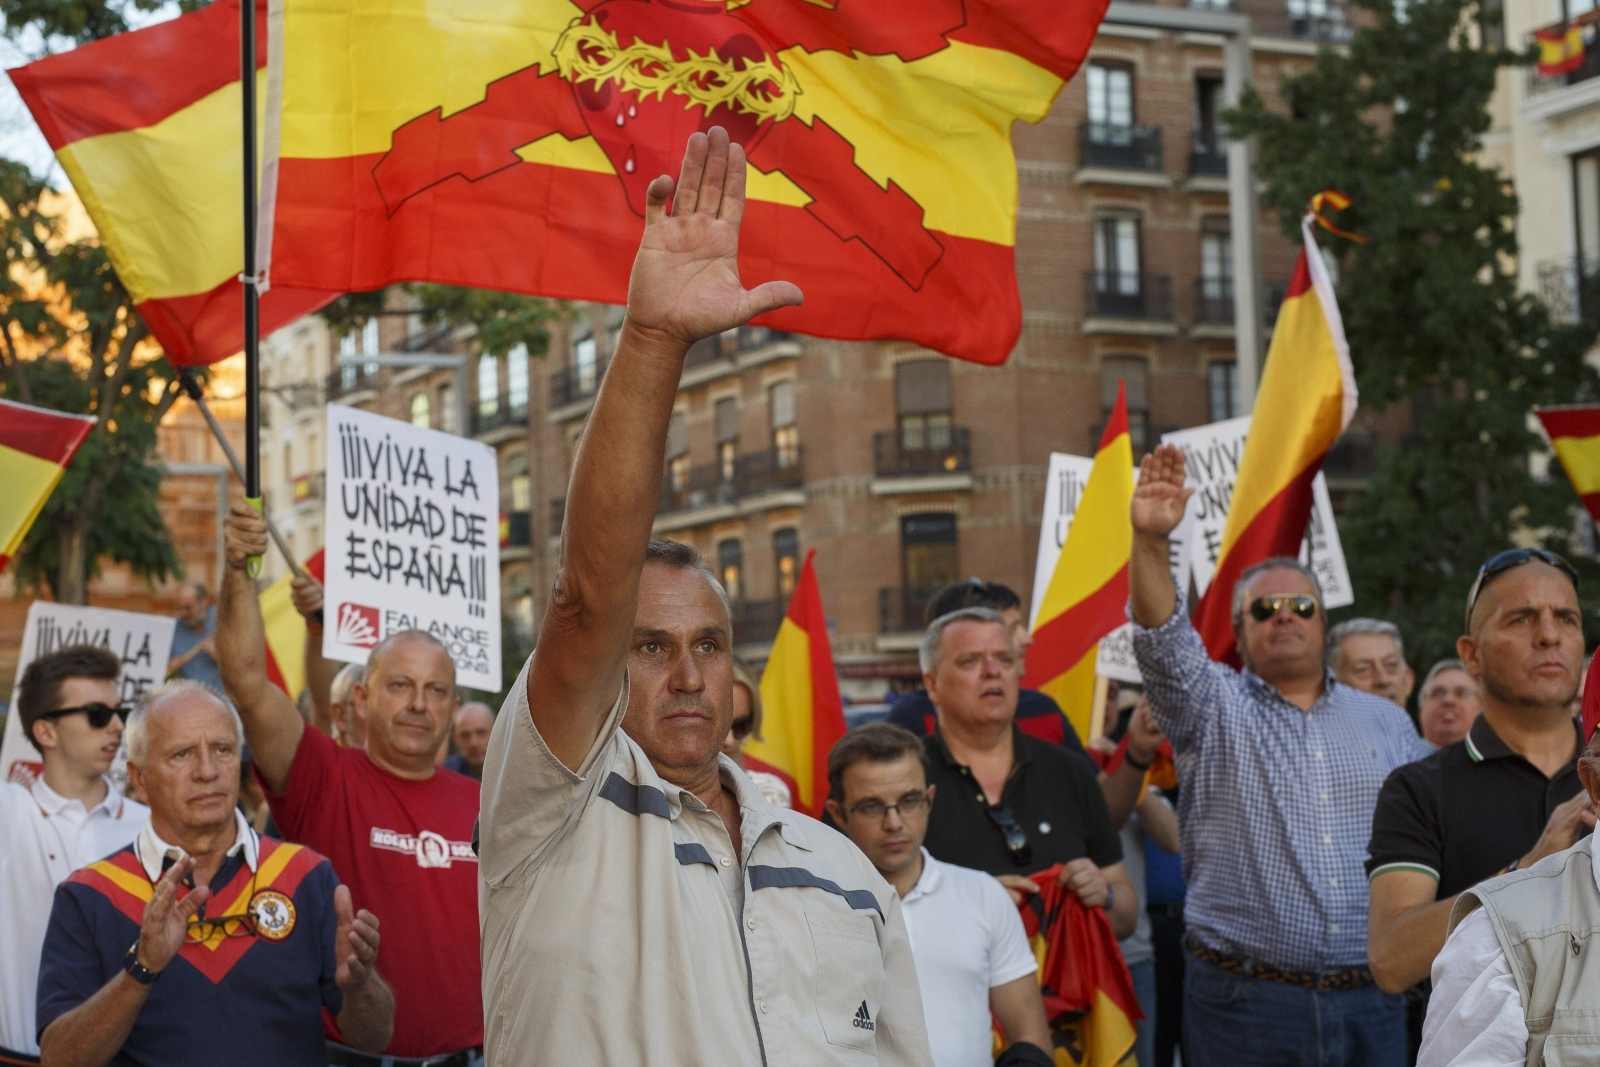 Nazi salute Catalan independence